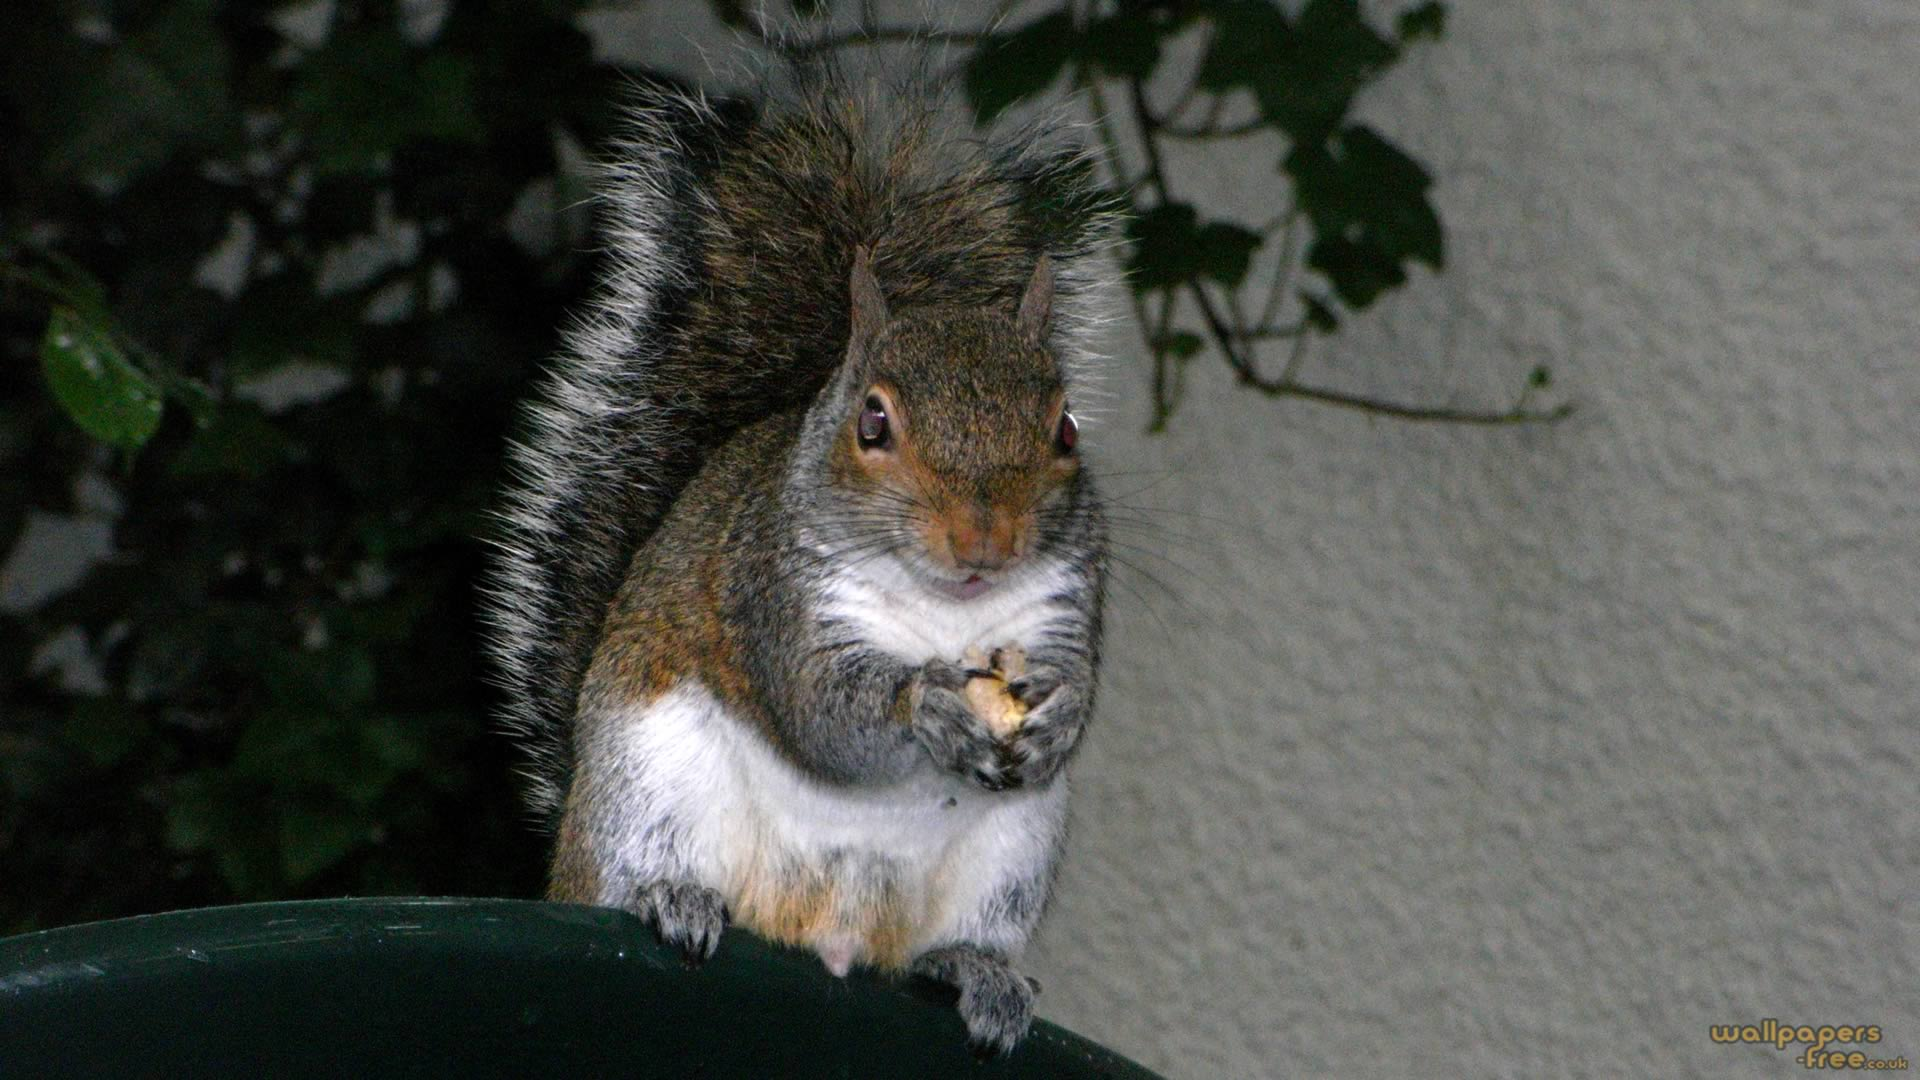 Squirrel Sitting On End Of Chair